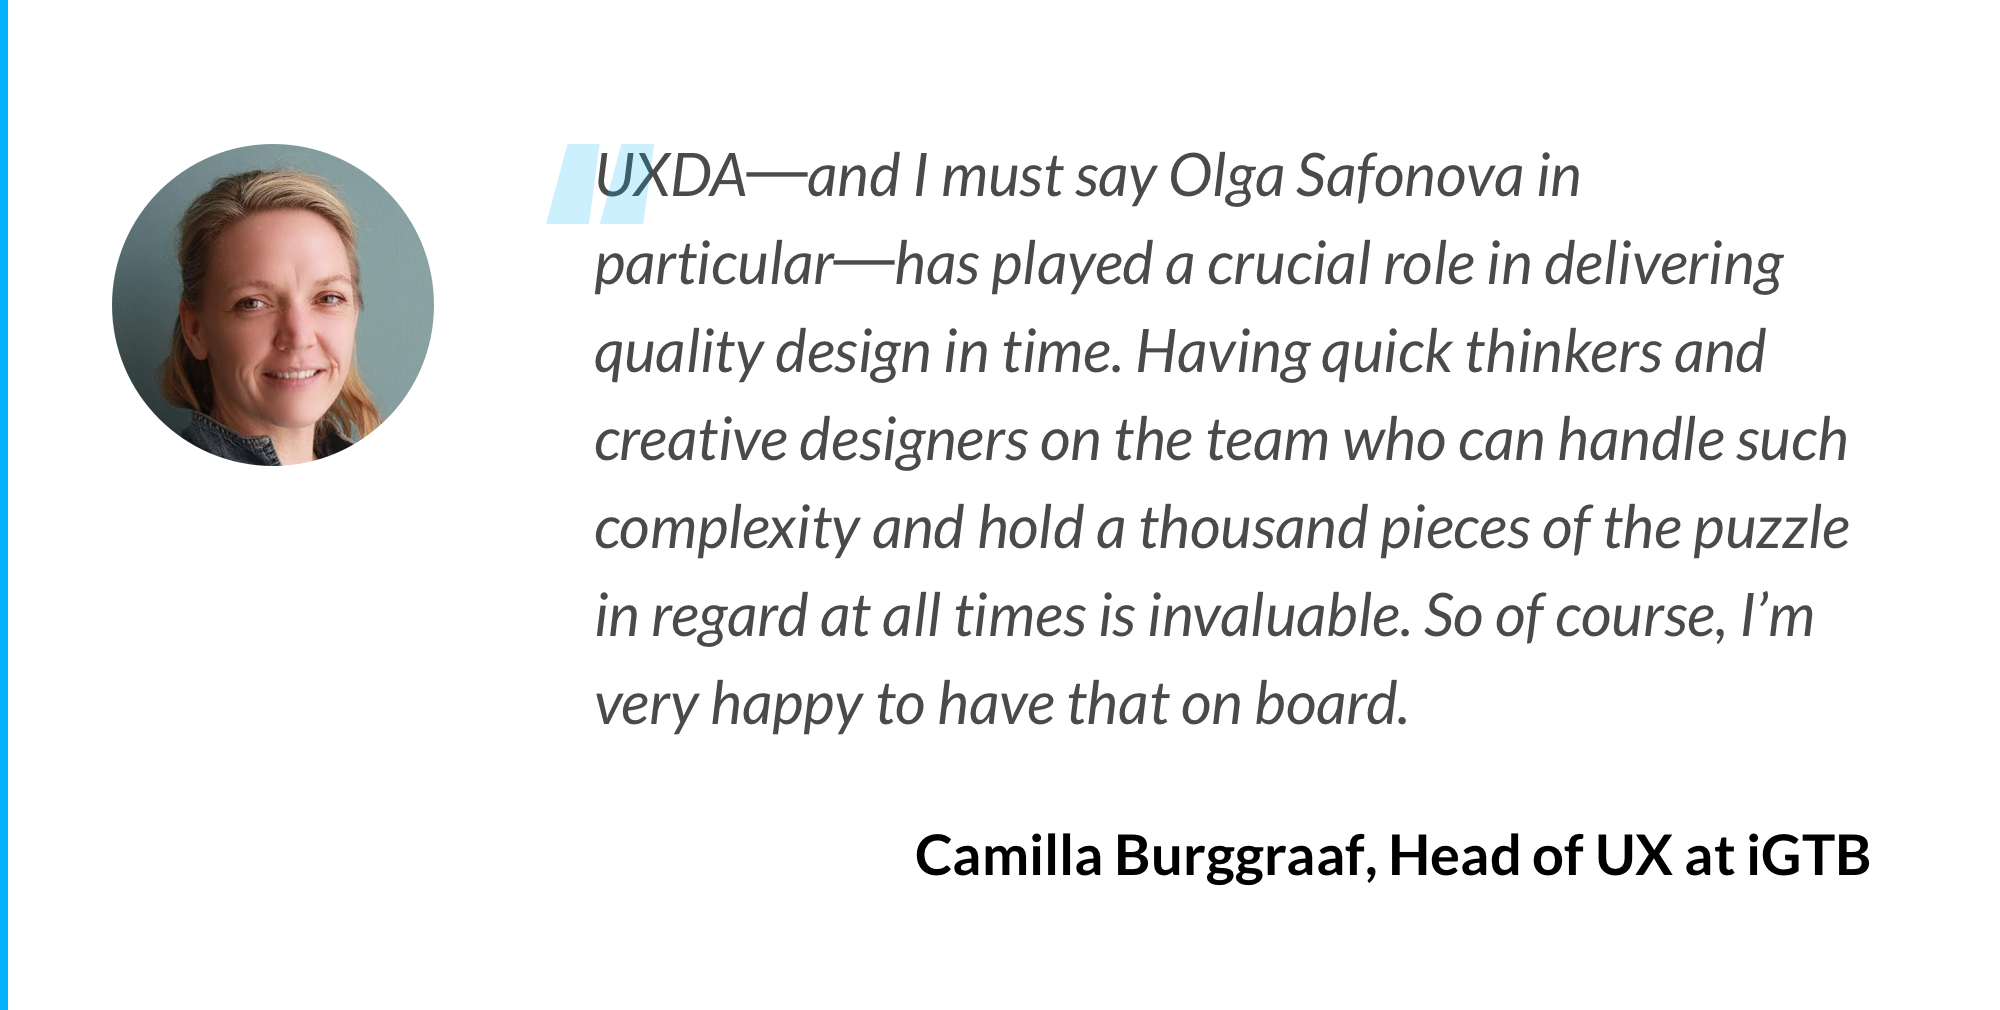 igtb-case-study-quote-camilla-burggraaf-3-at-2x.png